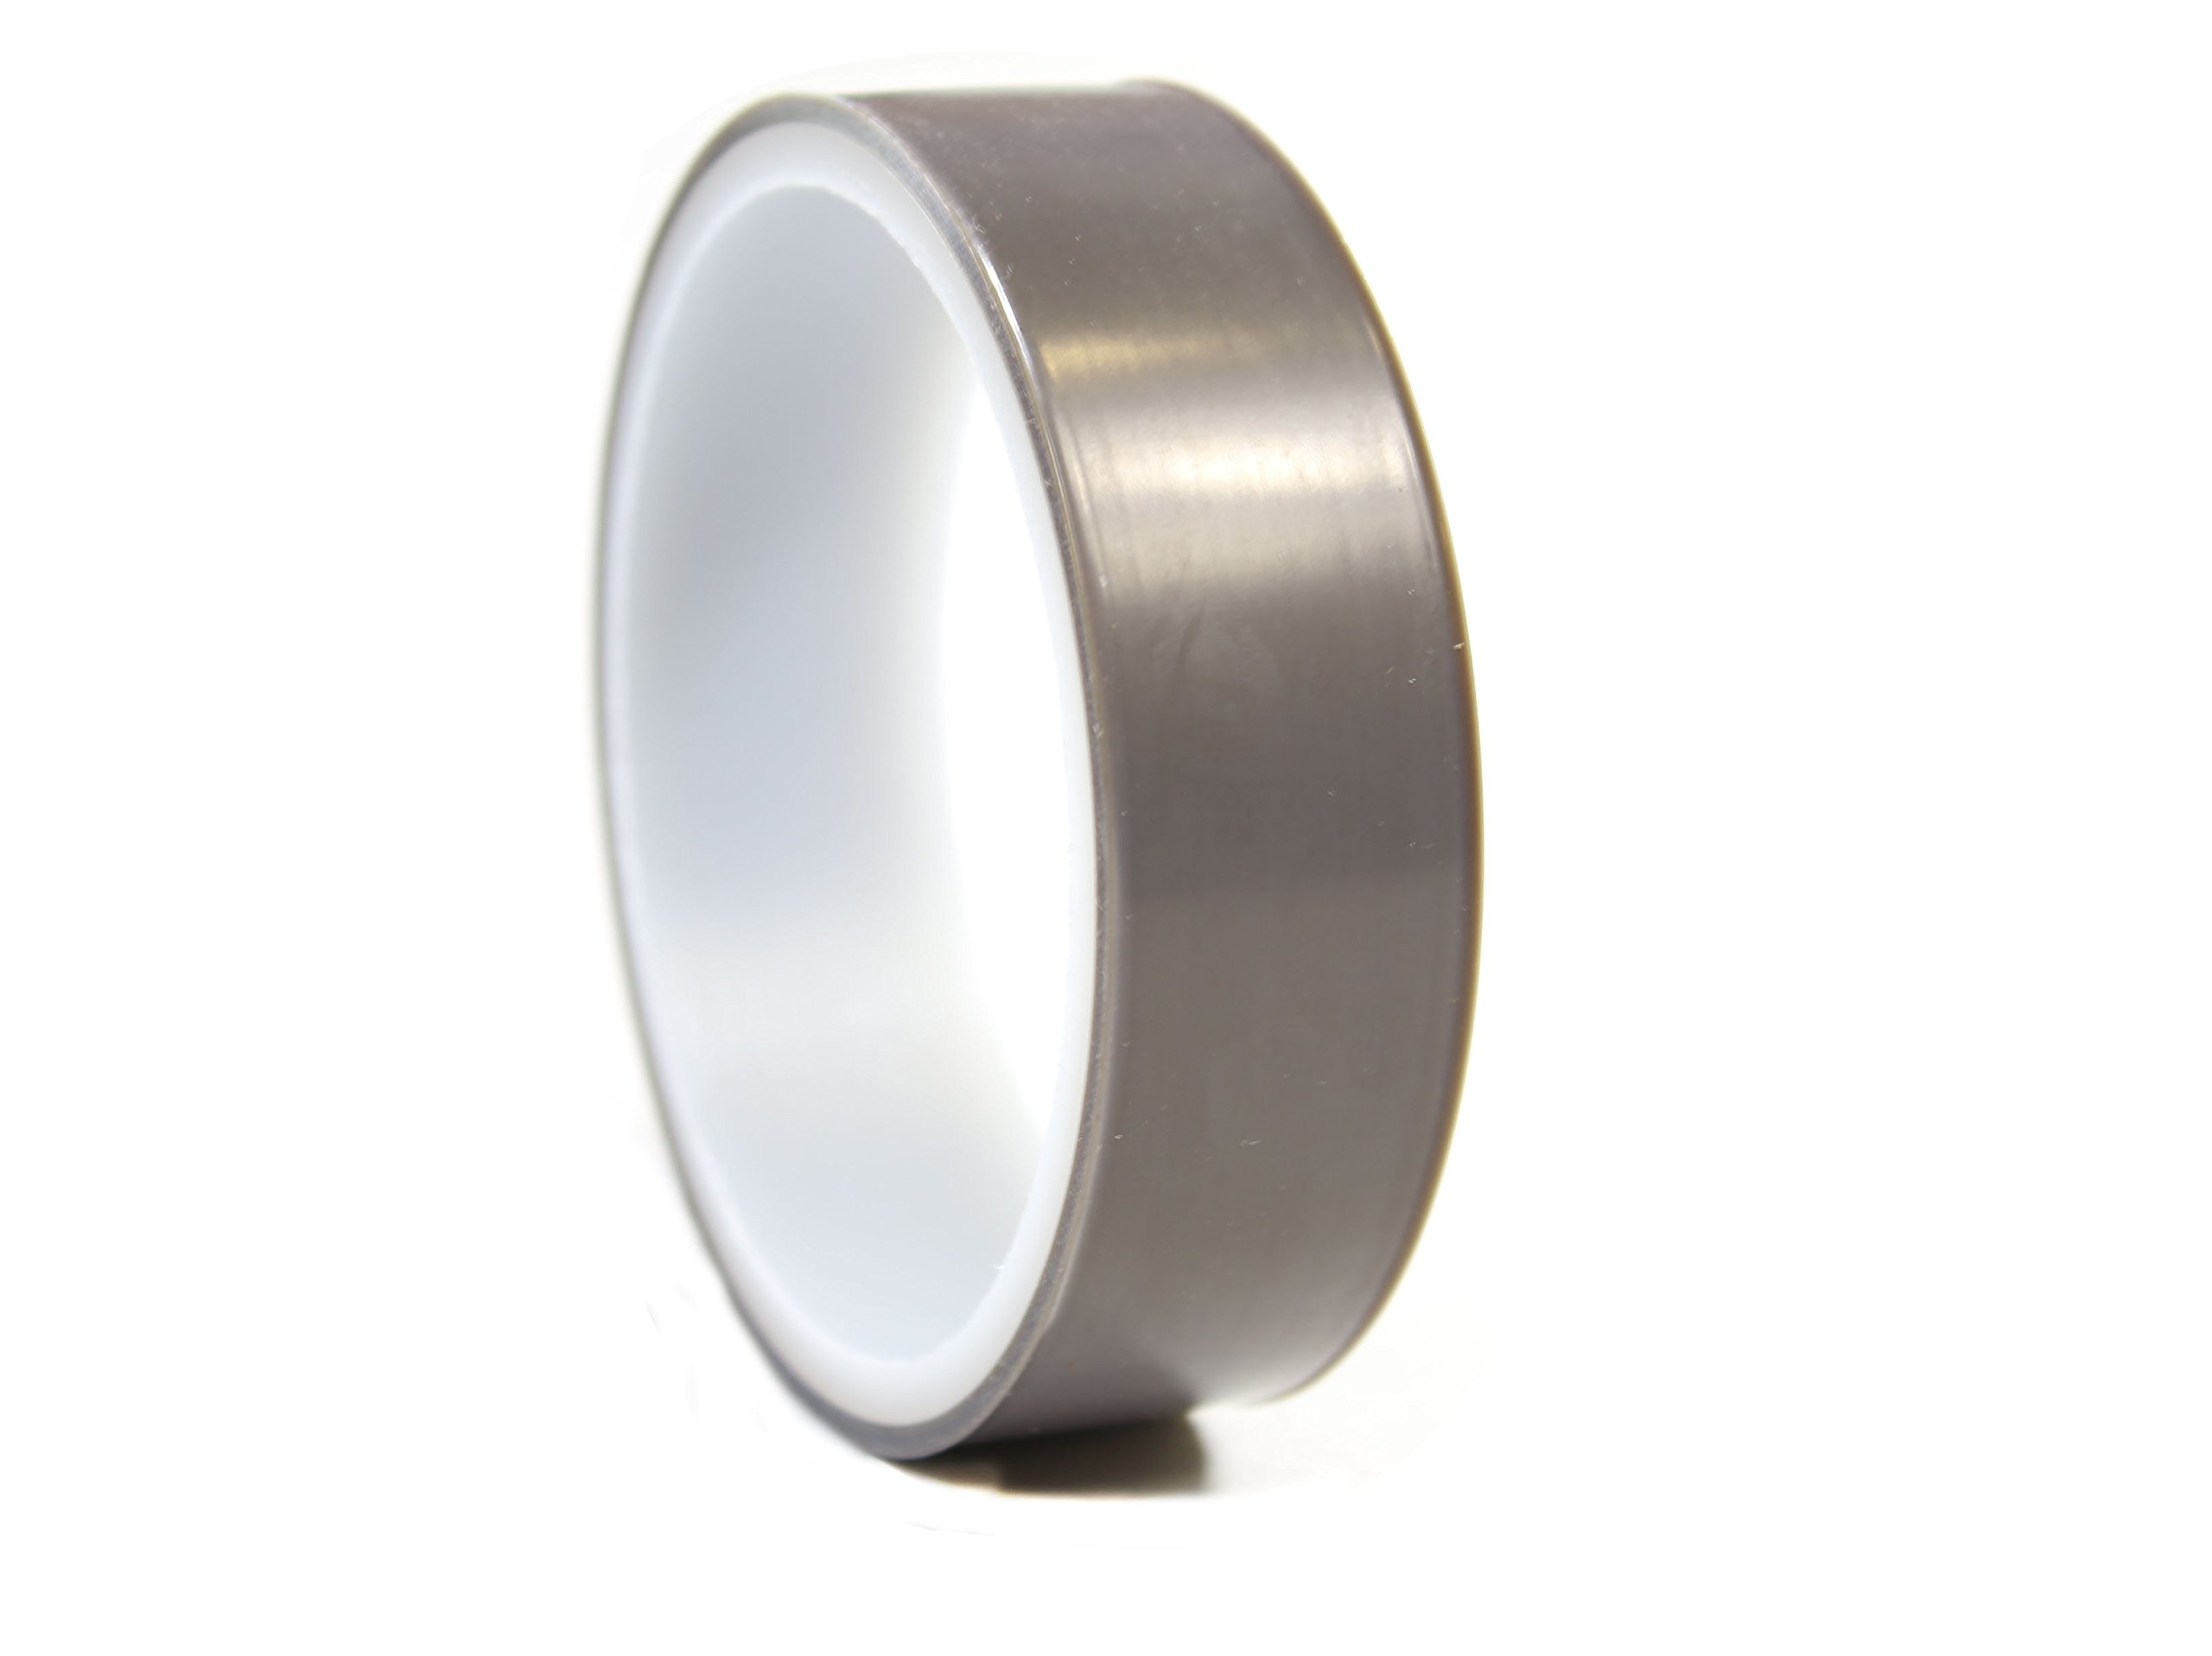 CS Hyde 19-5R UHMW .005 Mil Tape with Rubber Adhesive, 0.5'' x 36 Yards by CS Hyde